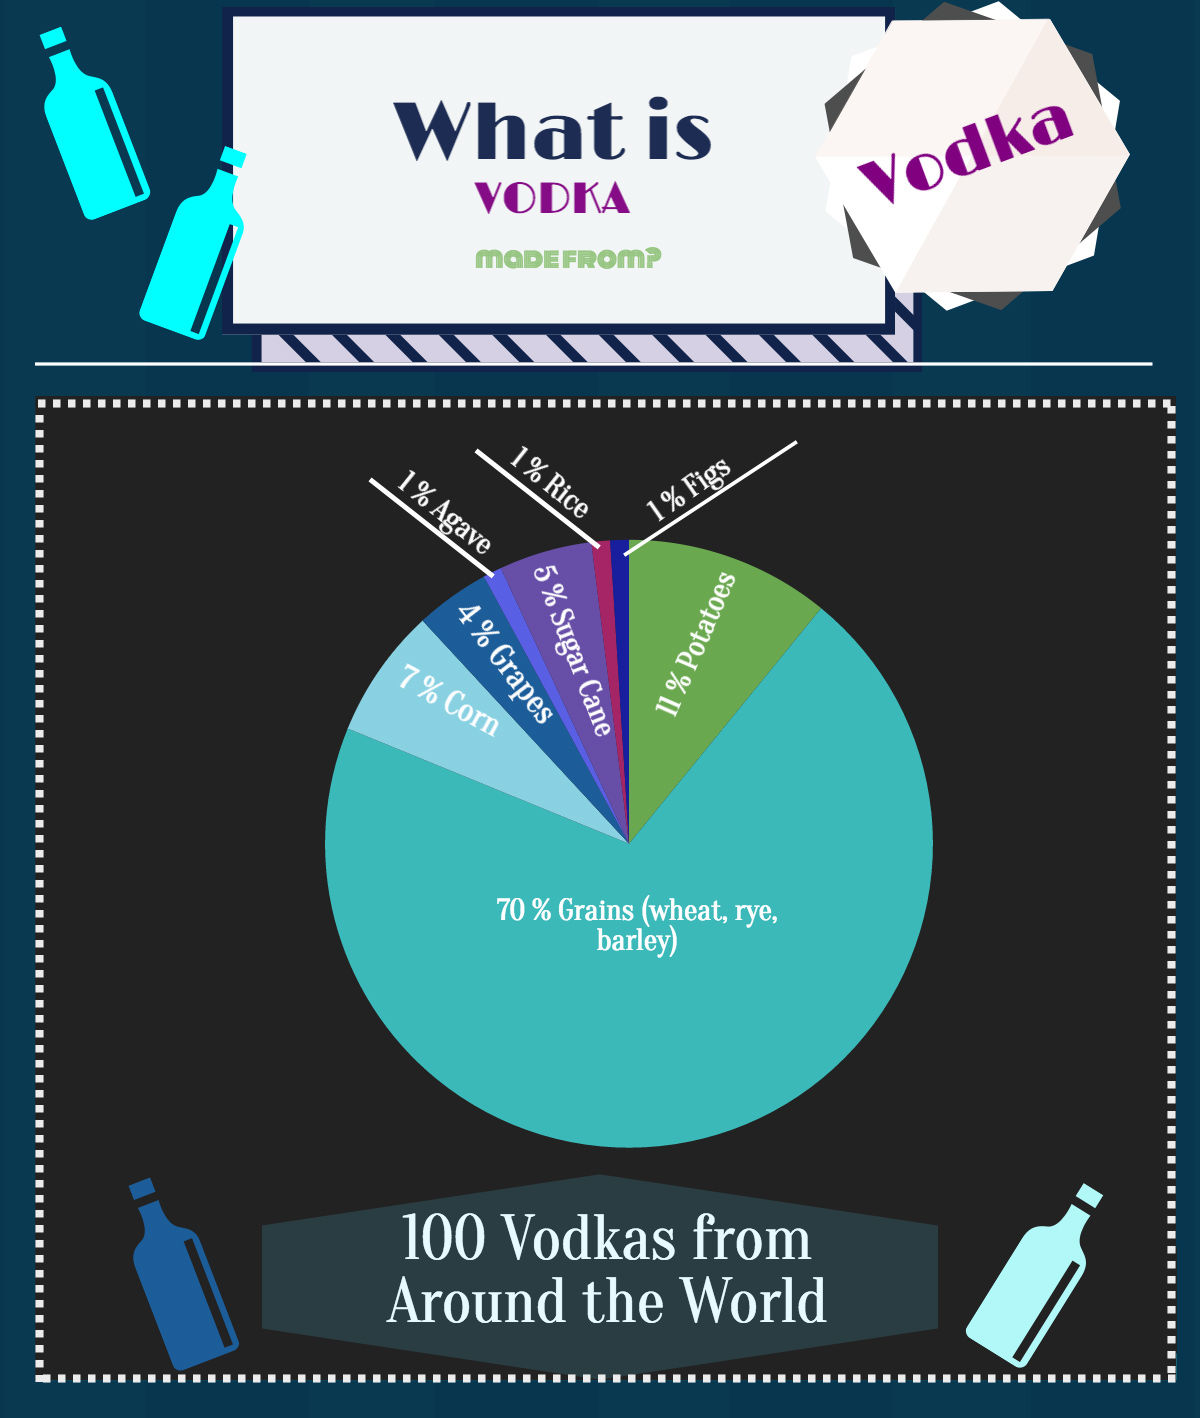 What is vodka made out of? What is vodka made from?